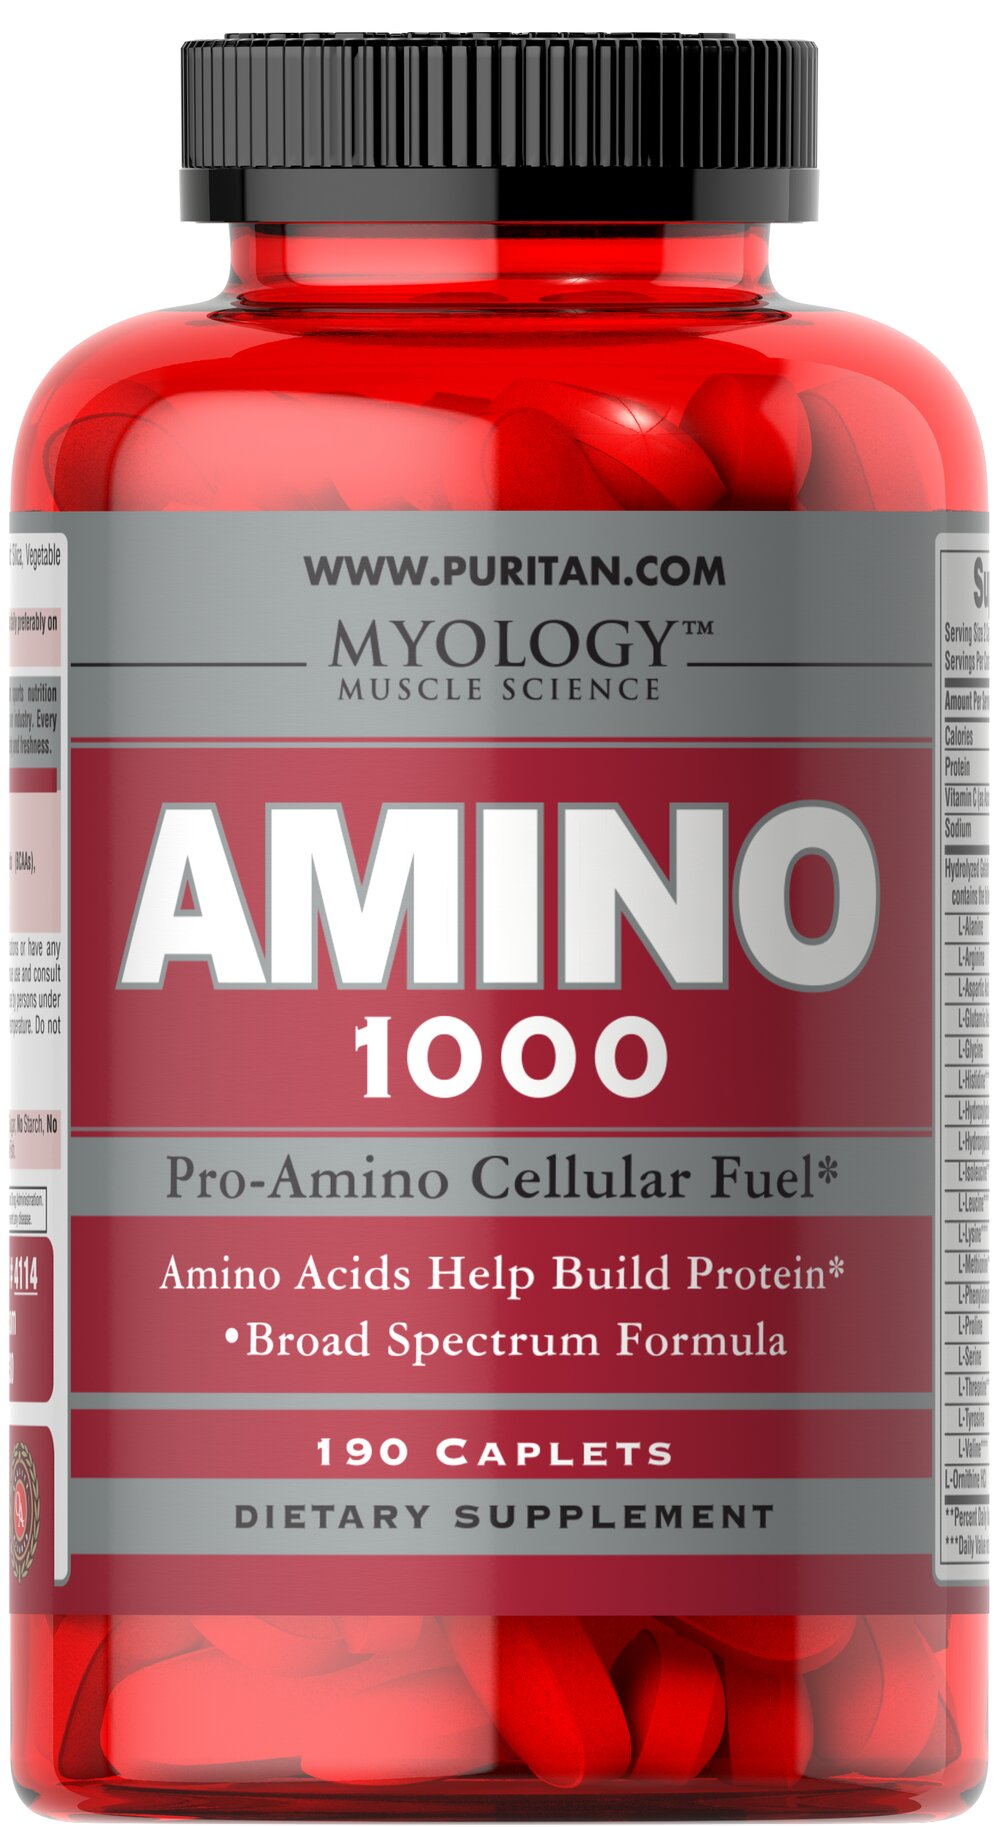 "Amino 1000 <p>This Amino Acid formula contains all three Branch Chained Amino Acids (BCAAs), as well as other essential Aminos.  Amino Acids provide crucial building blocks for protein which are the main components of muscle tissue.** Product includes: <span style=""font-size:11.0pt;font-family:'Calibri','sans-serif';"">424mg of Glycine, 30mg of Ornithine, 140mg of Arginine and 60mg of Lysine</span><br /></p> 190 Caplets 1000 mg $17.99"